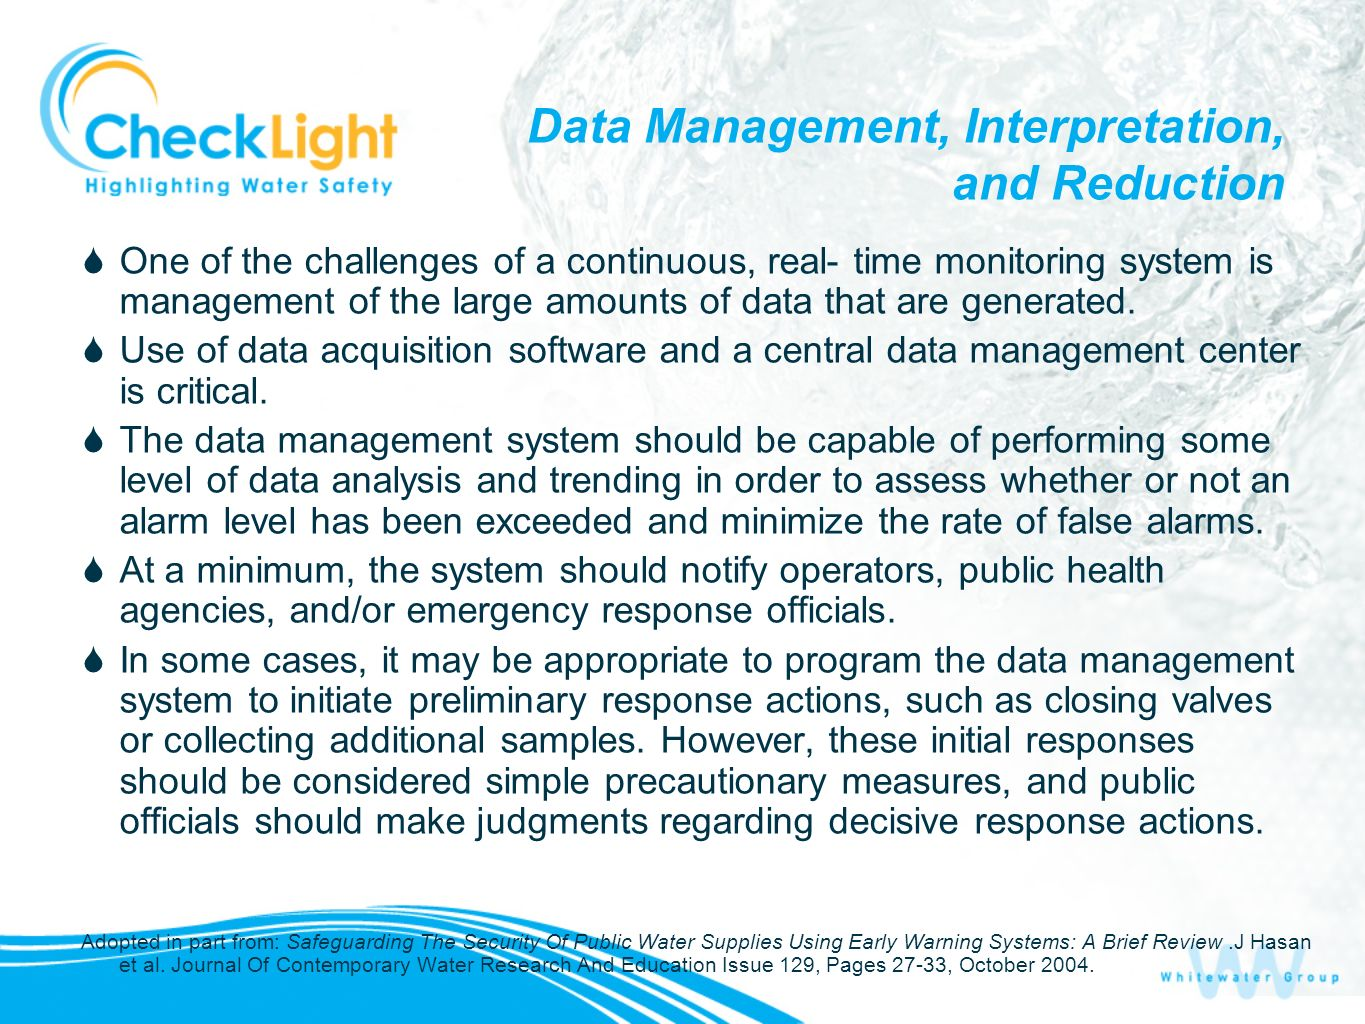 Data Management, Interpretation, and Reduction